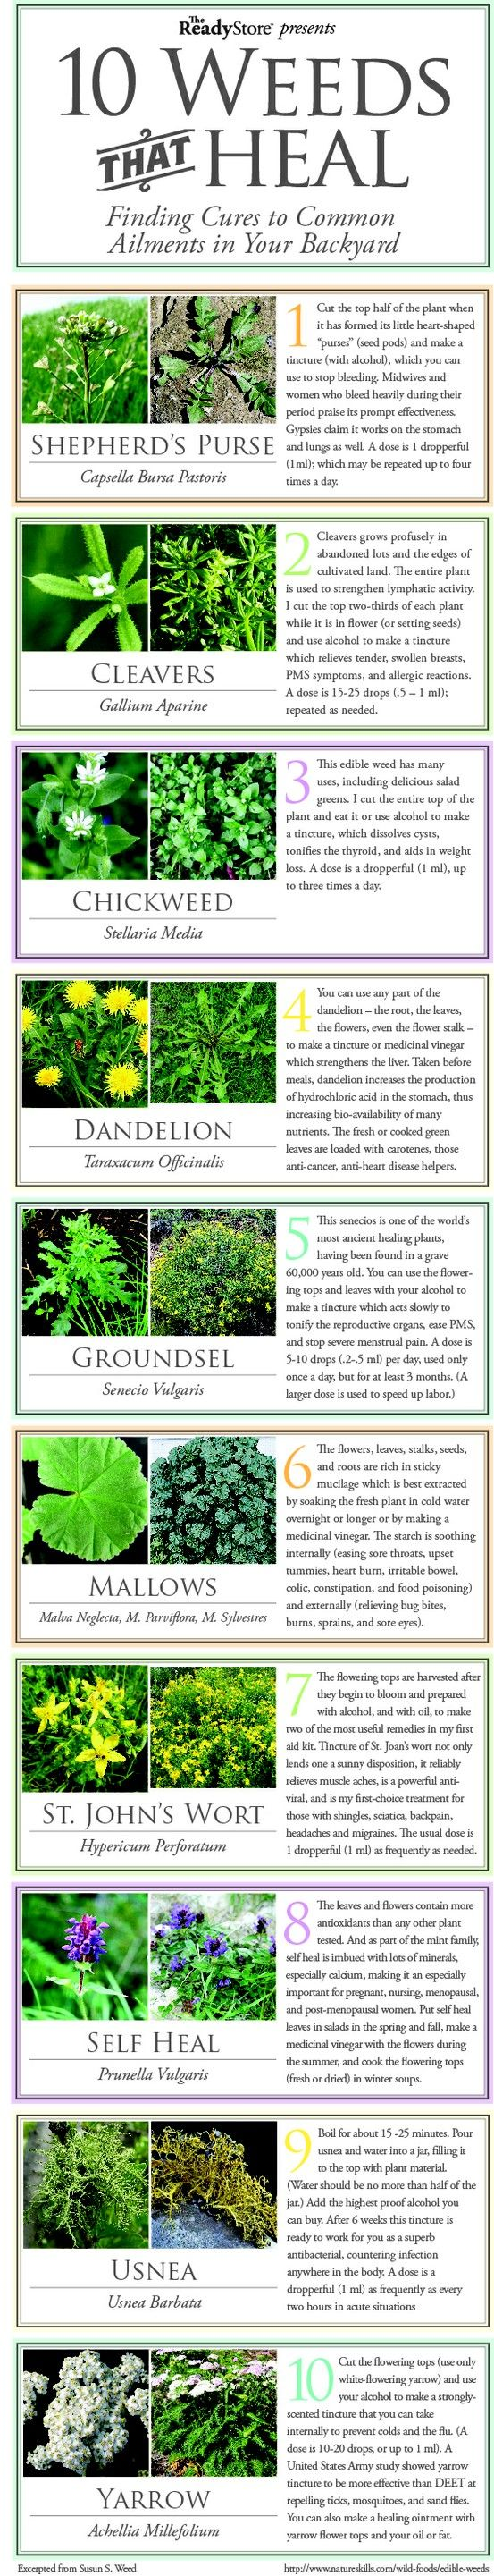 10 Weeds that Heal: Finding Cures to Common Ailments in Your Backyard.